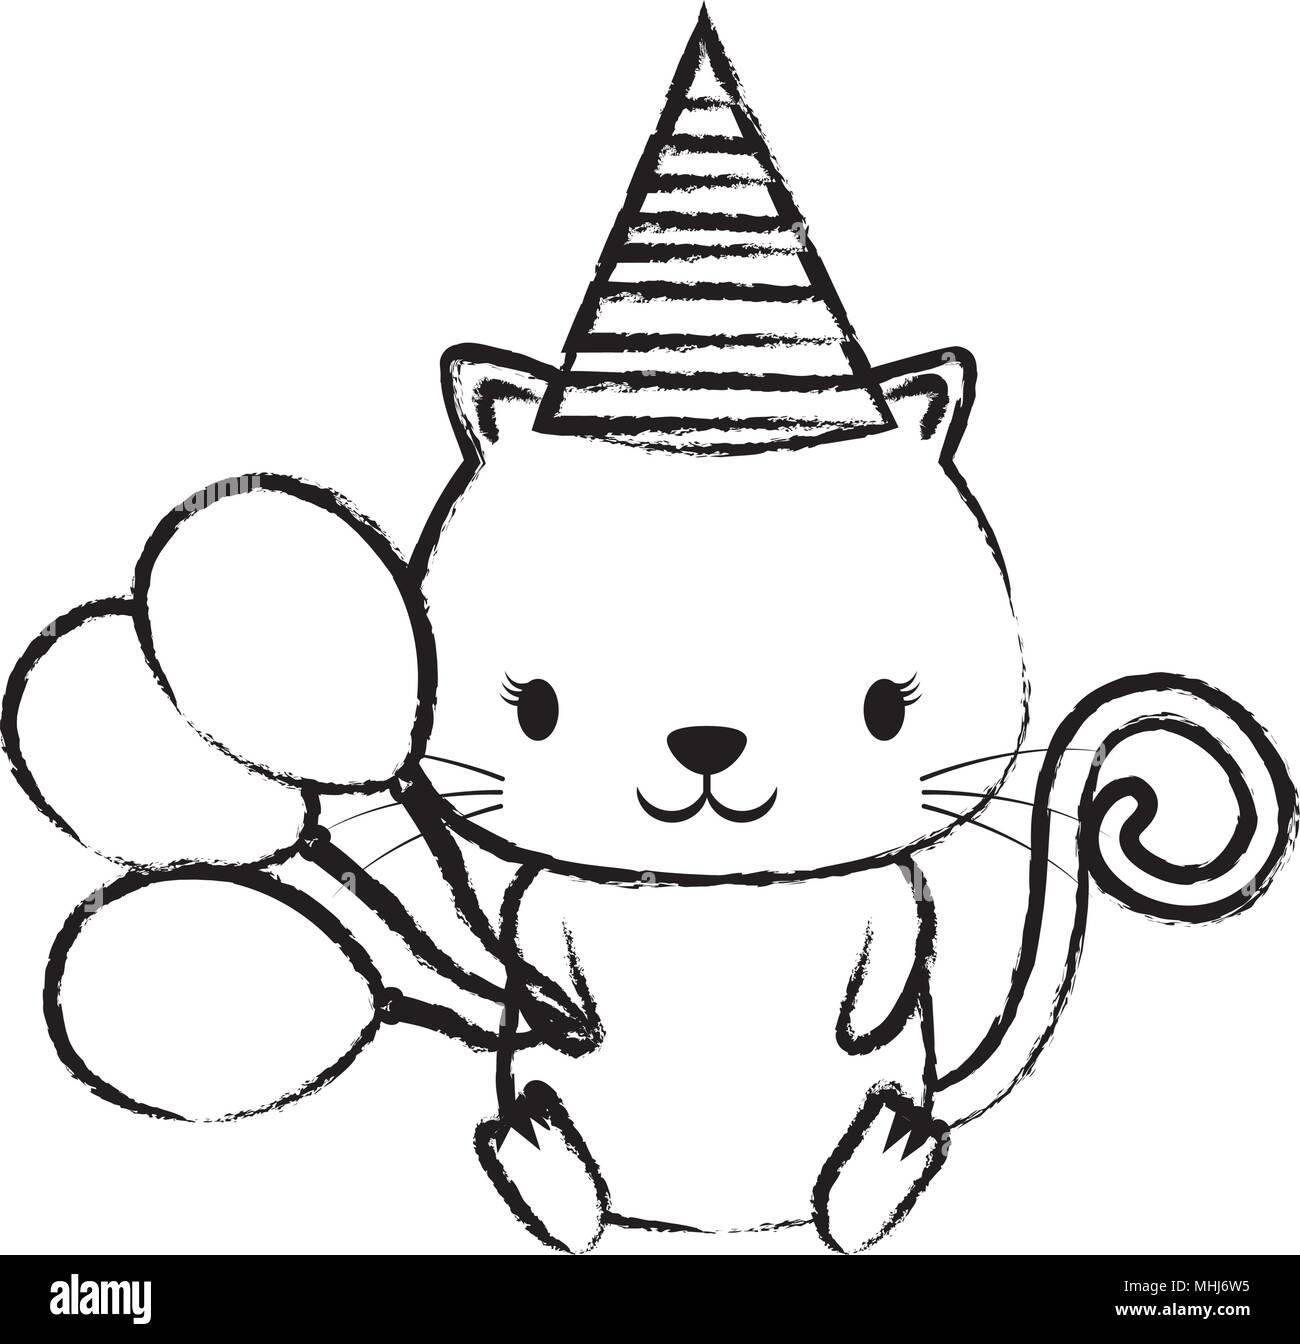 Happy Birthday Design With Cute Cat Hat And Balloons Over White Background Sketch Vector Illustration